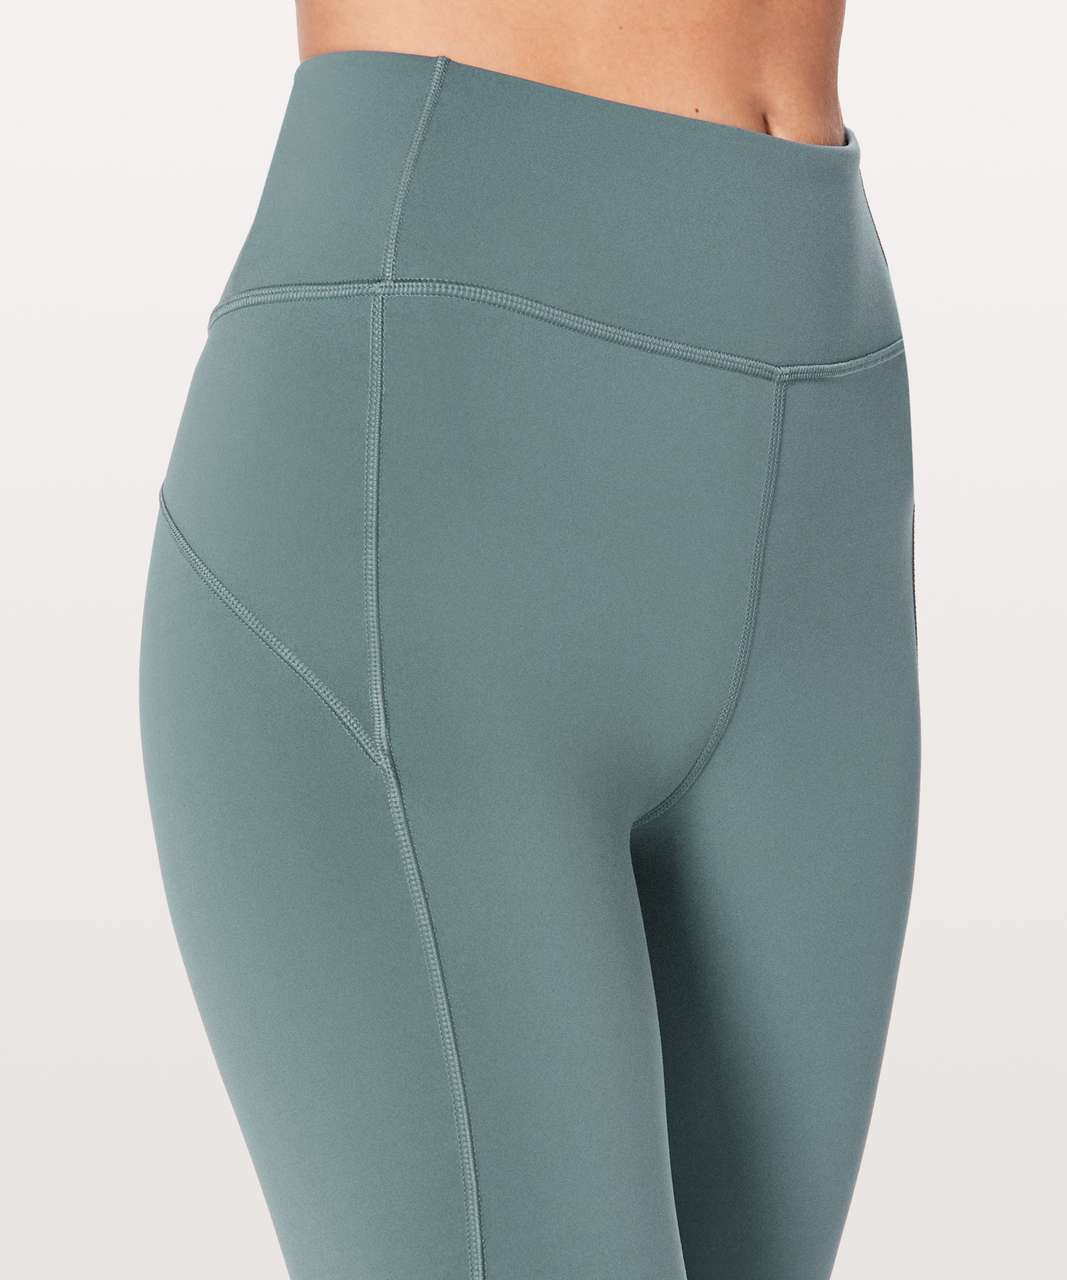 "Lululemon In Movement 7/8 Tight *Everlux 25"" - Mystic Green"